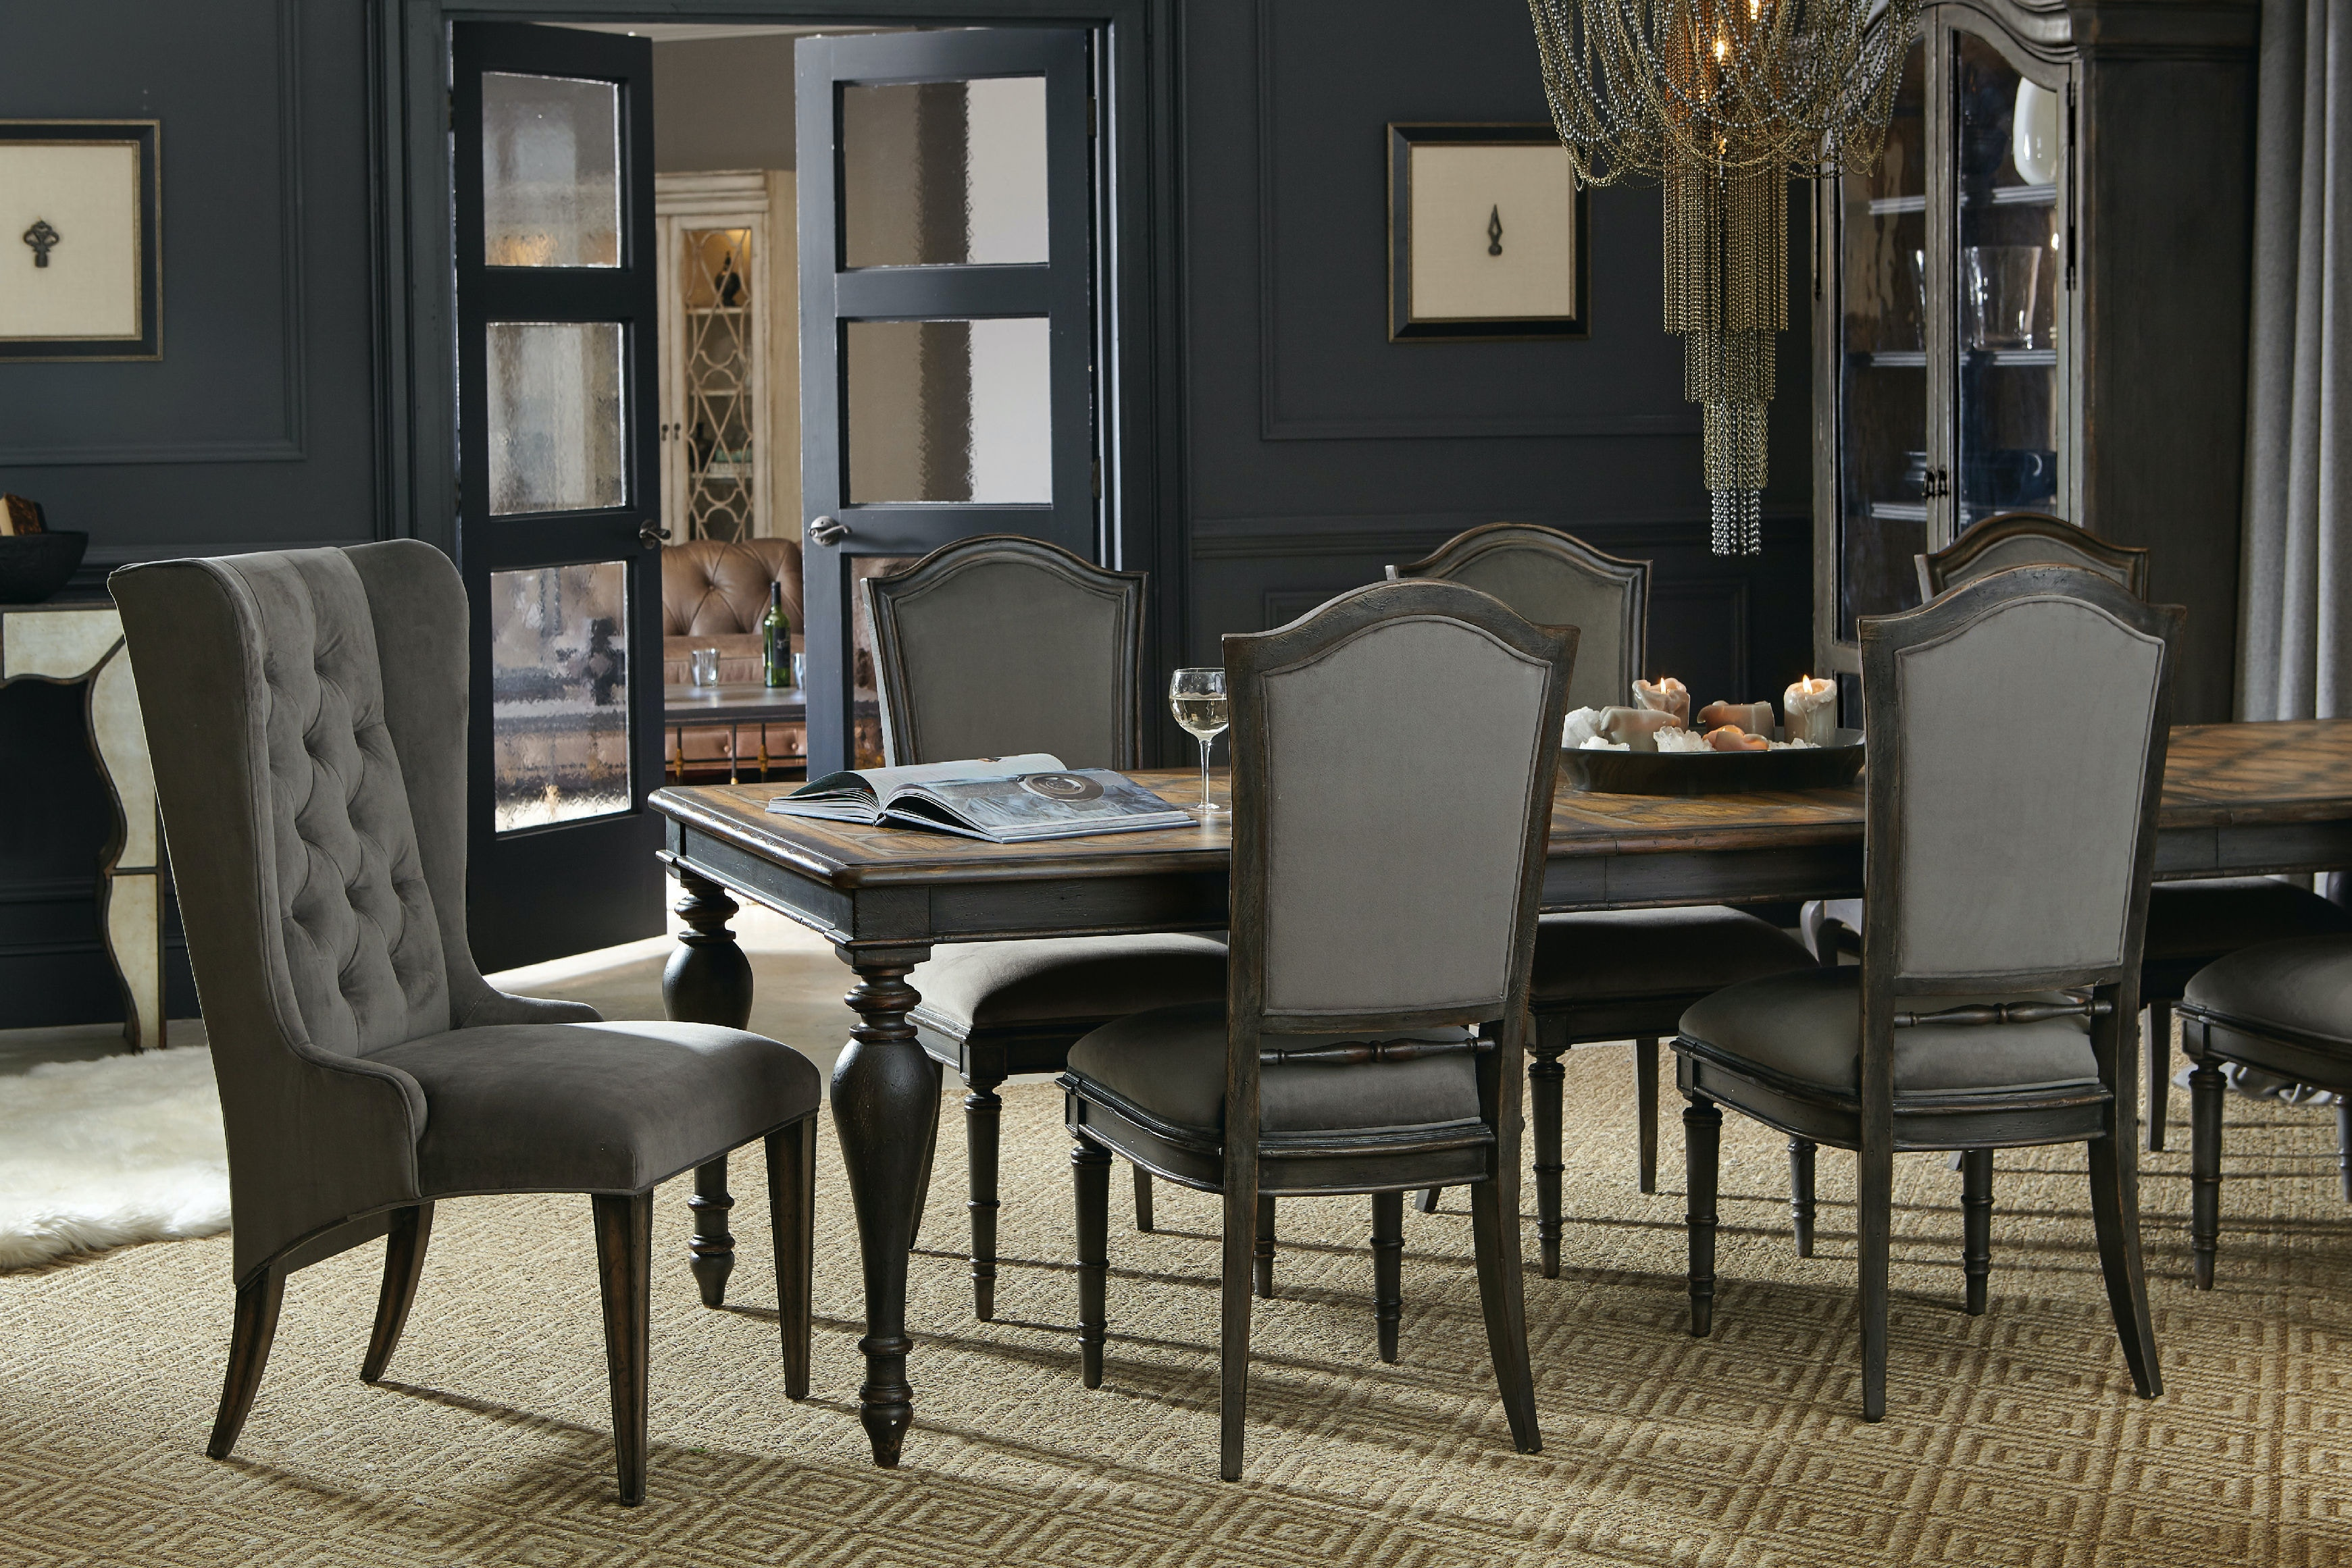 Hooker Furniture Dining Room Arabella Upholstered Host Chair 1610 ...